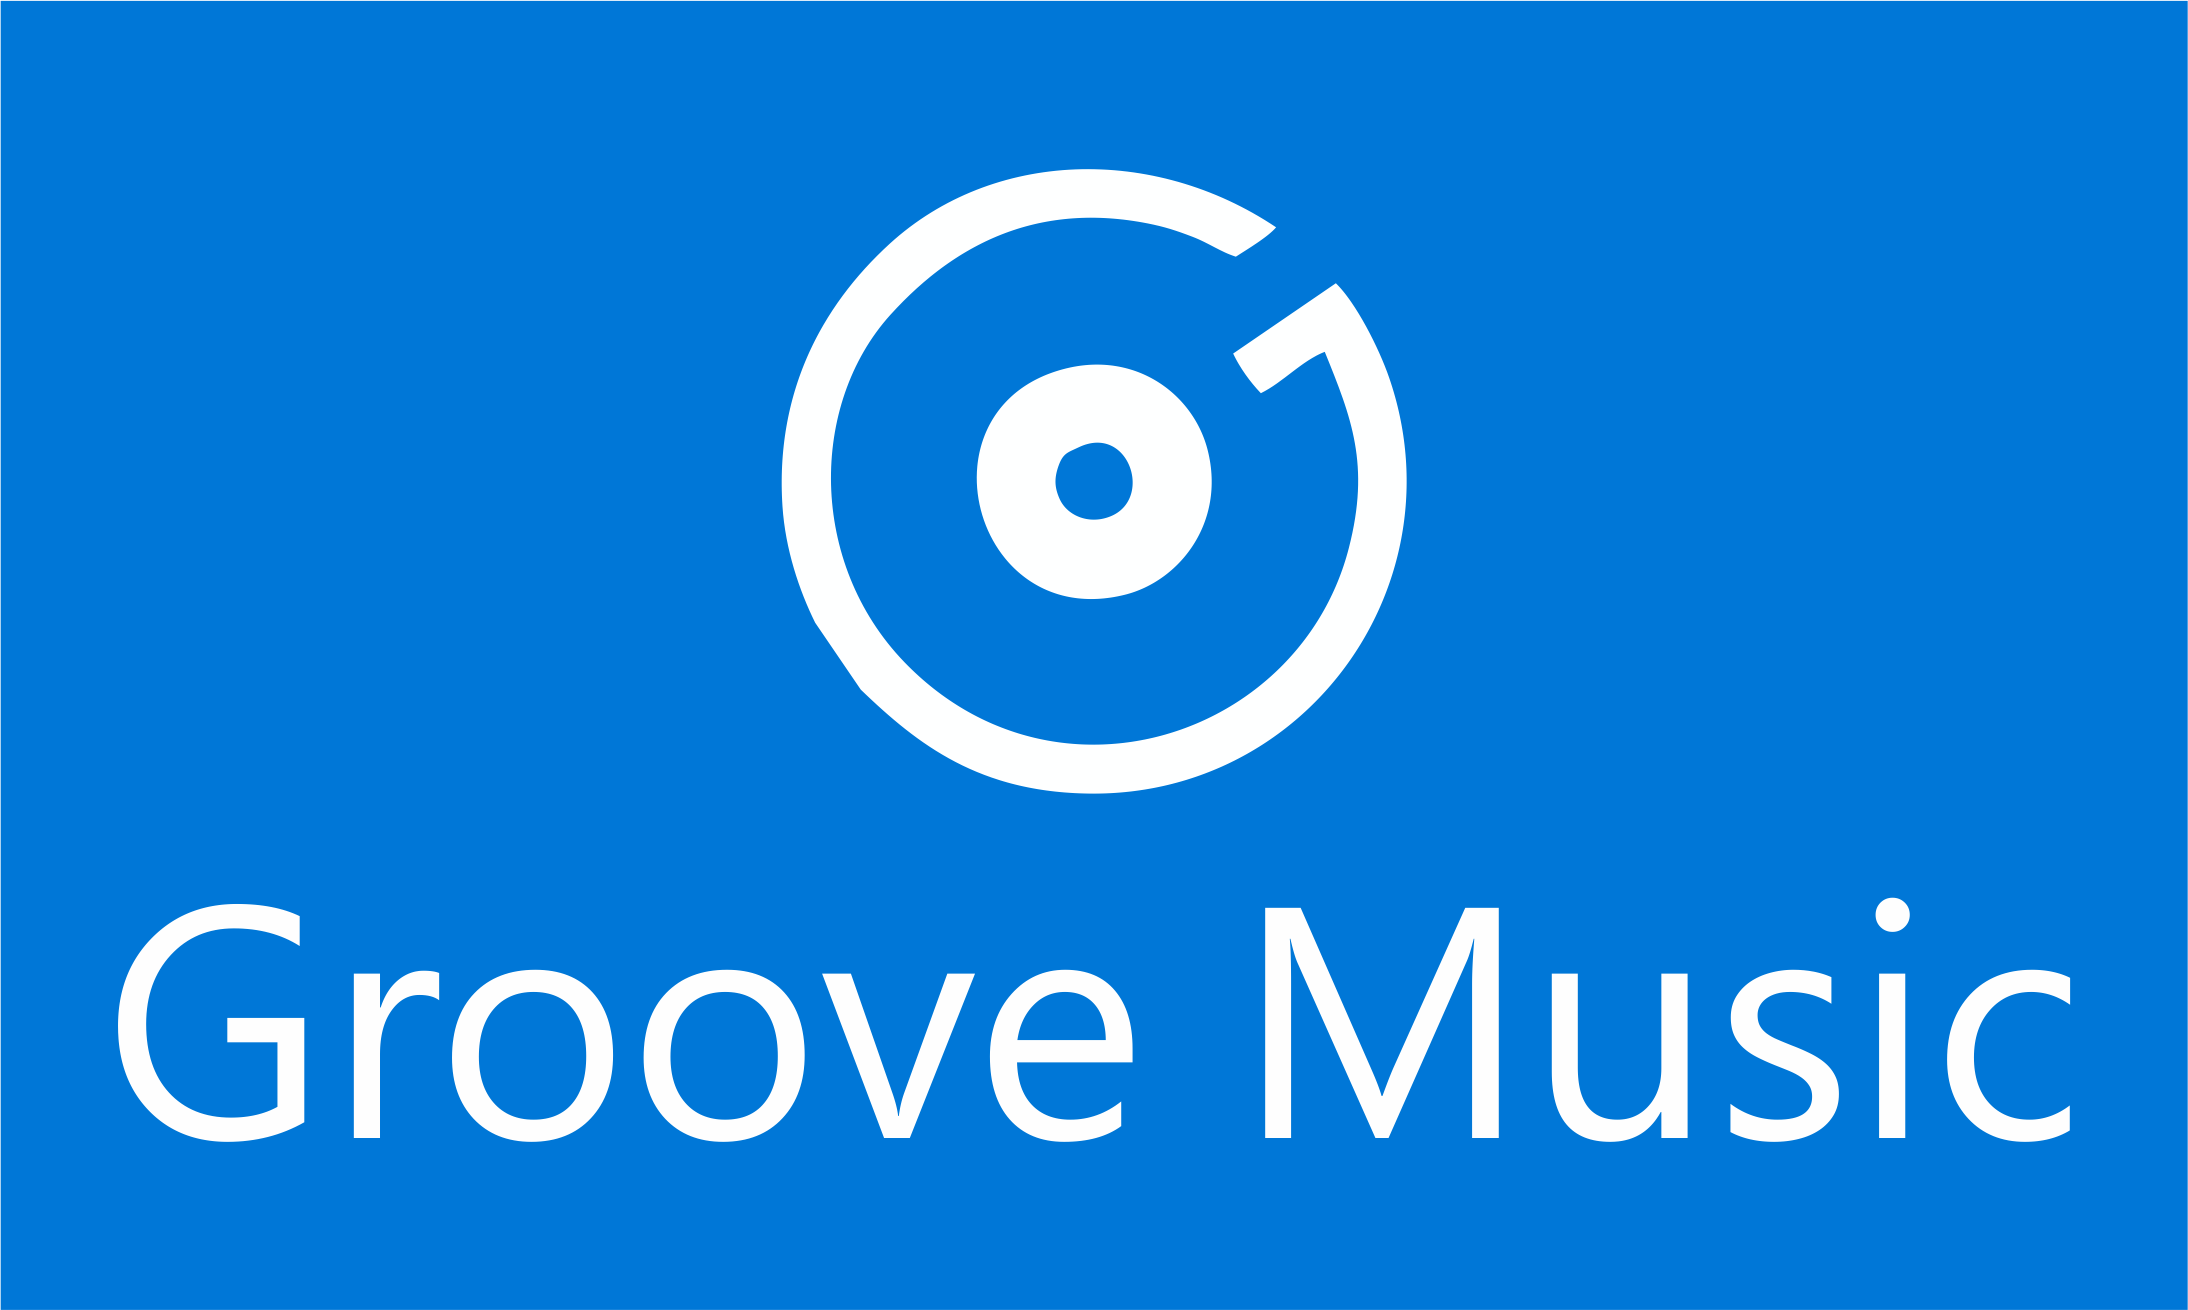 Add your songs to my xbox music groove 24h 7d Playlist